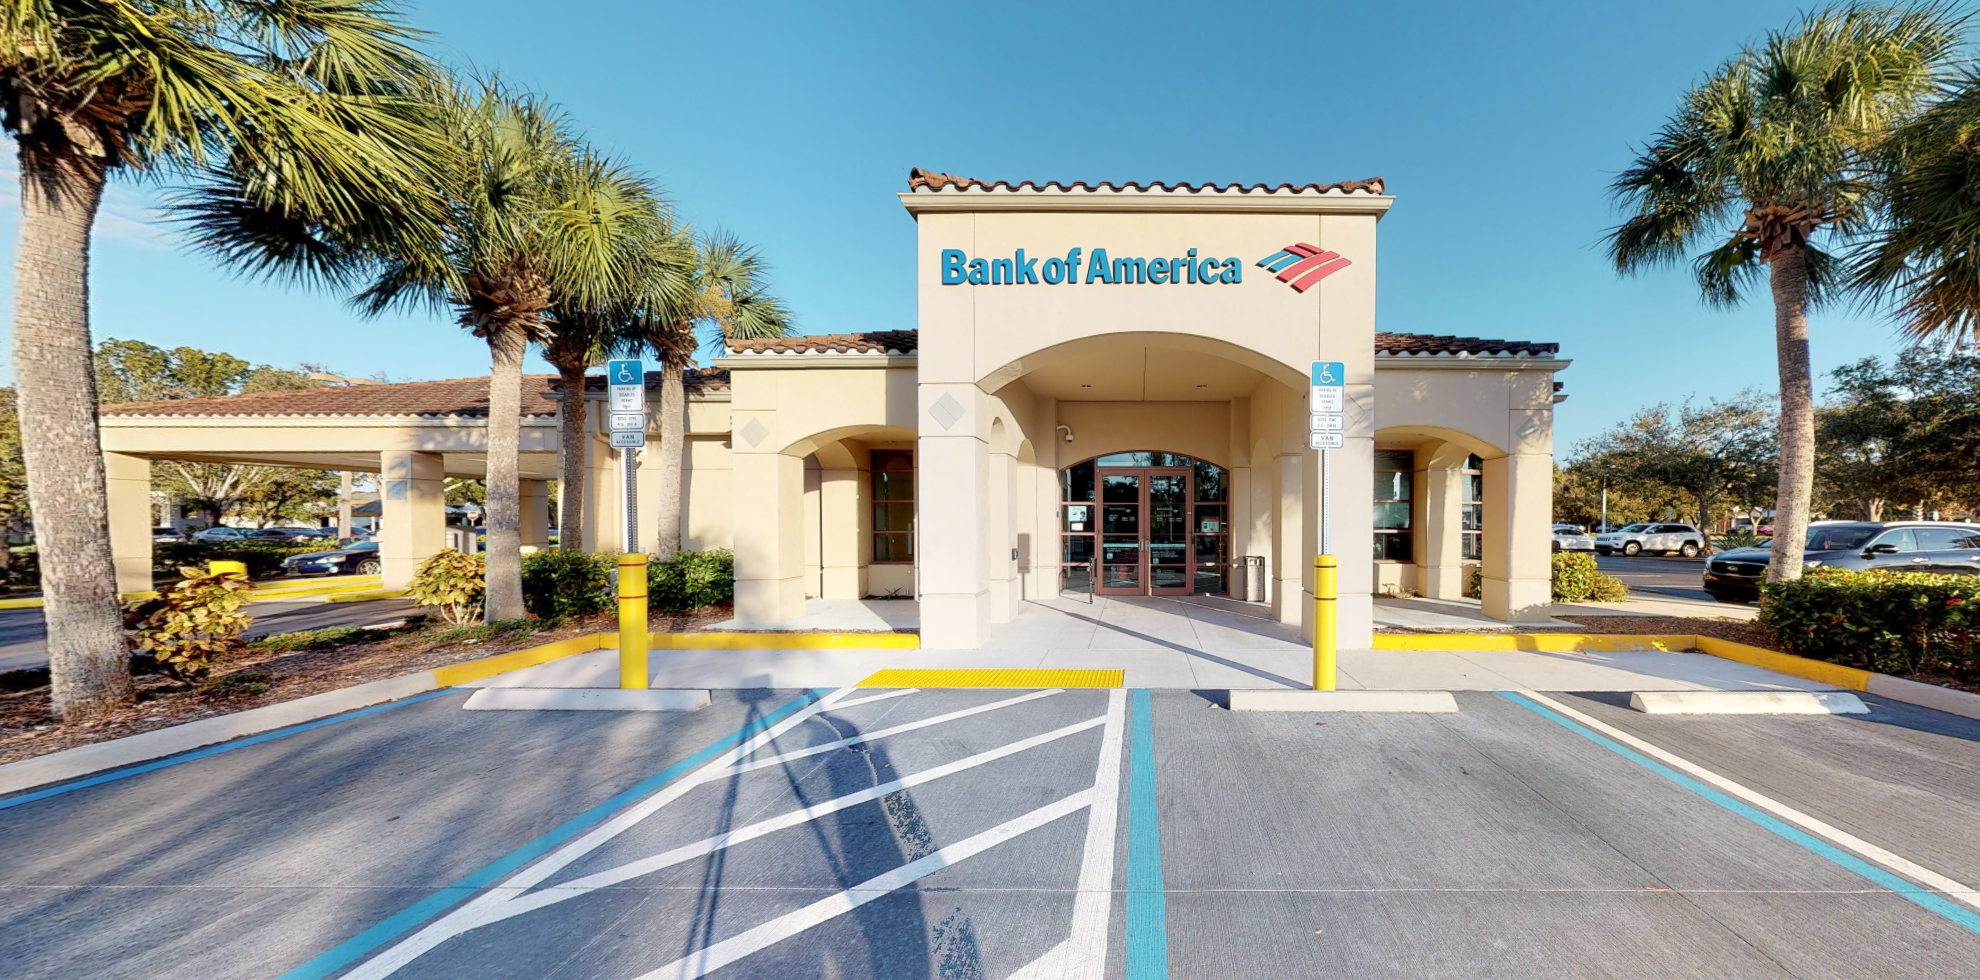 Bank of America financial center with drive-thru ATM and teller | 1511 Matthew Dr, Fort Myers, FL 33907